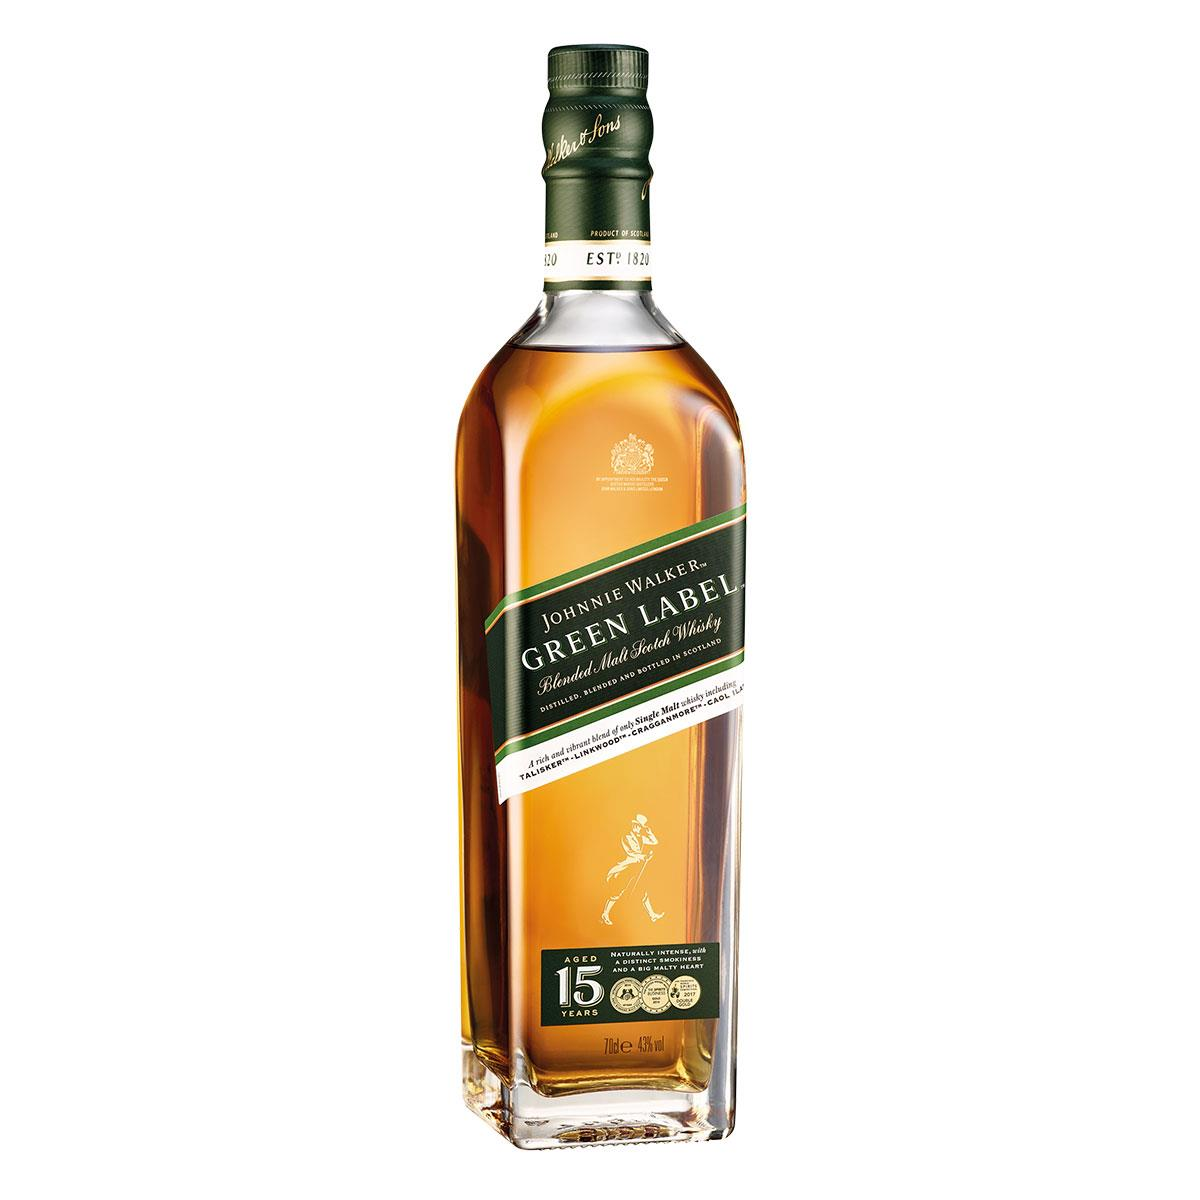 Johnnie Walker Green Label 15 y.o. 700ml